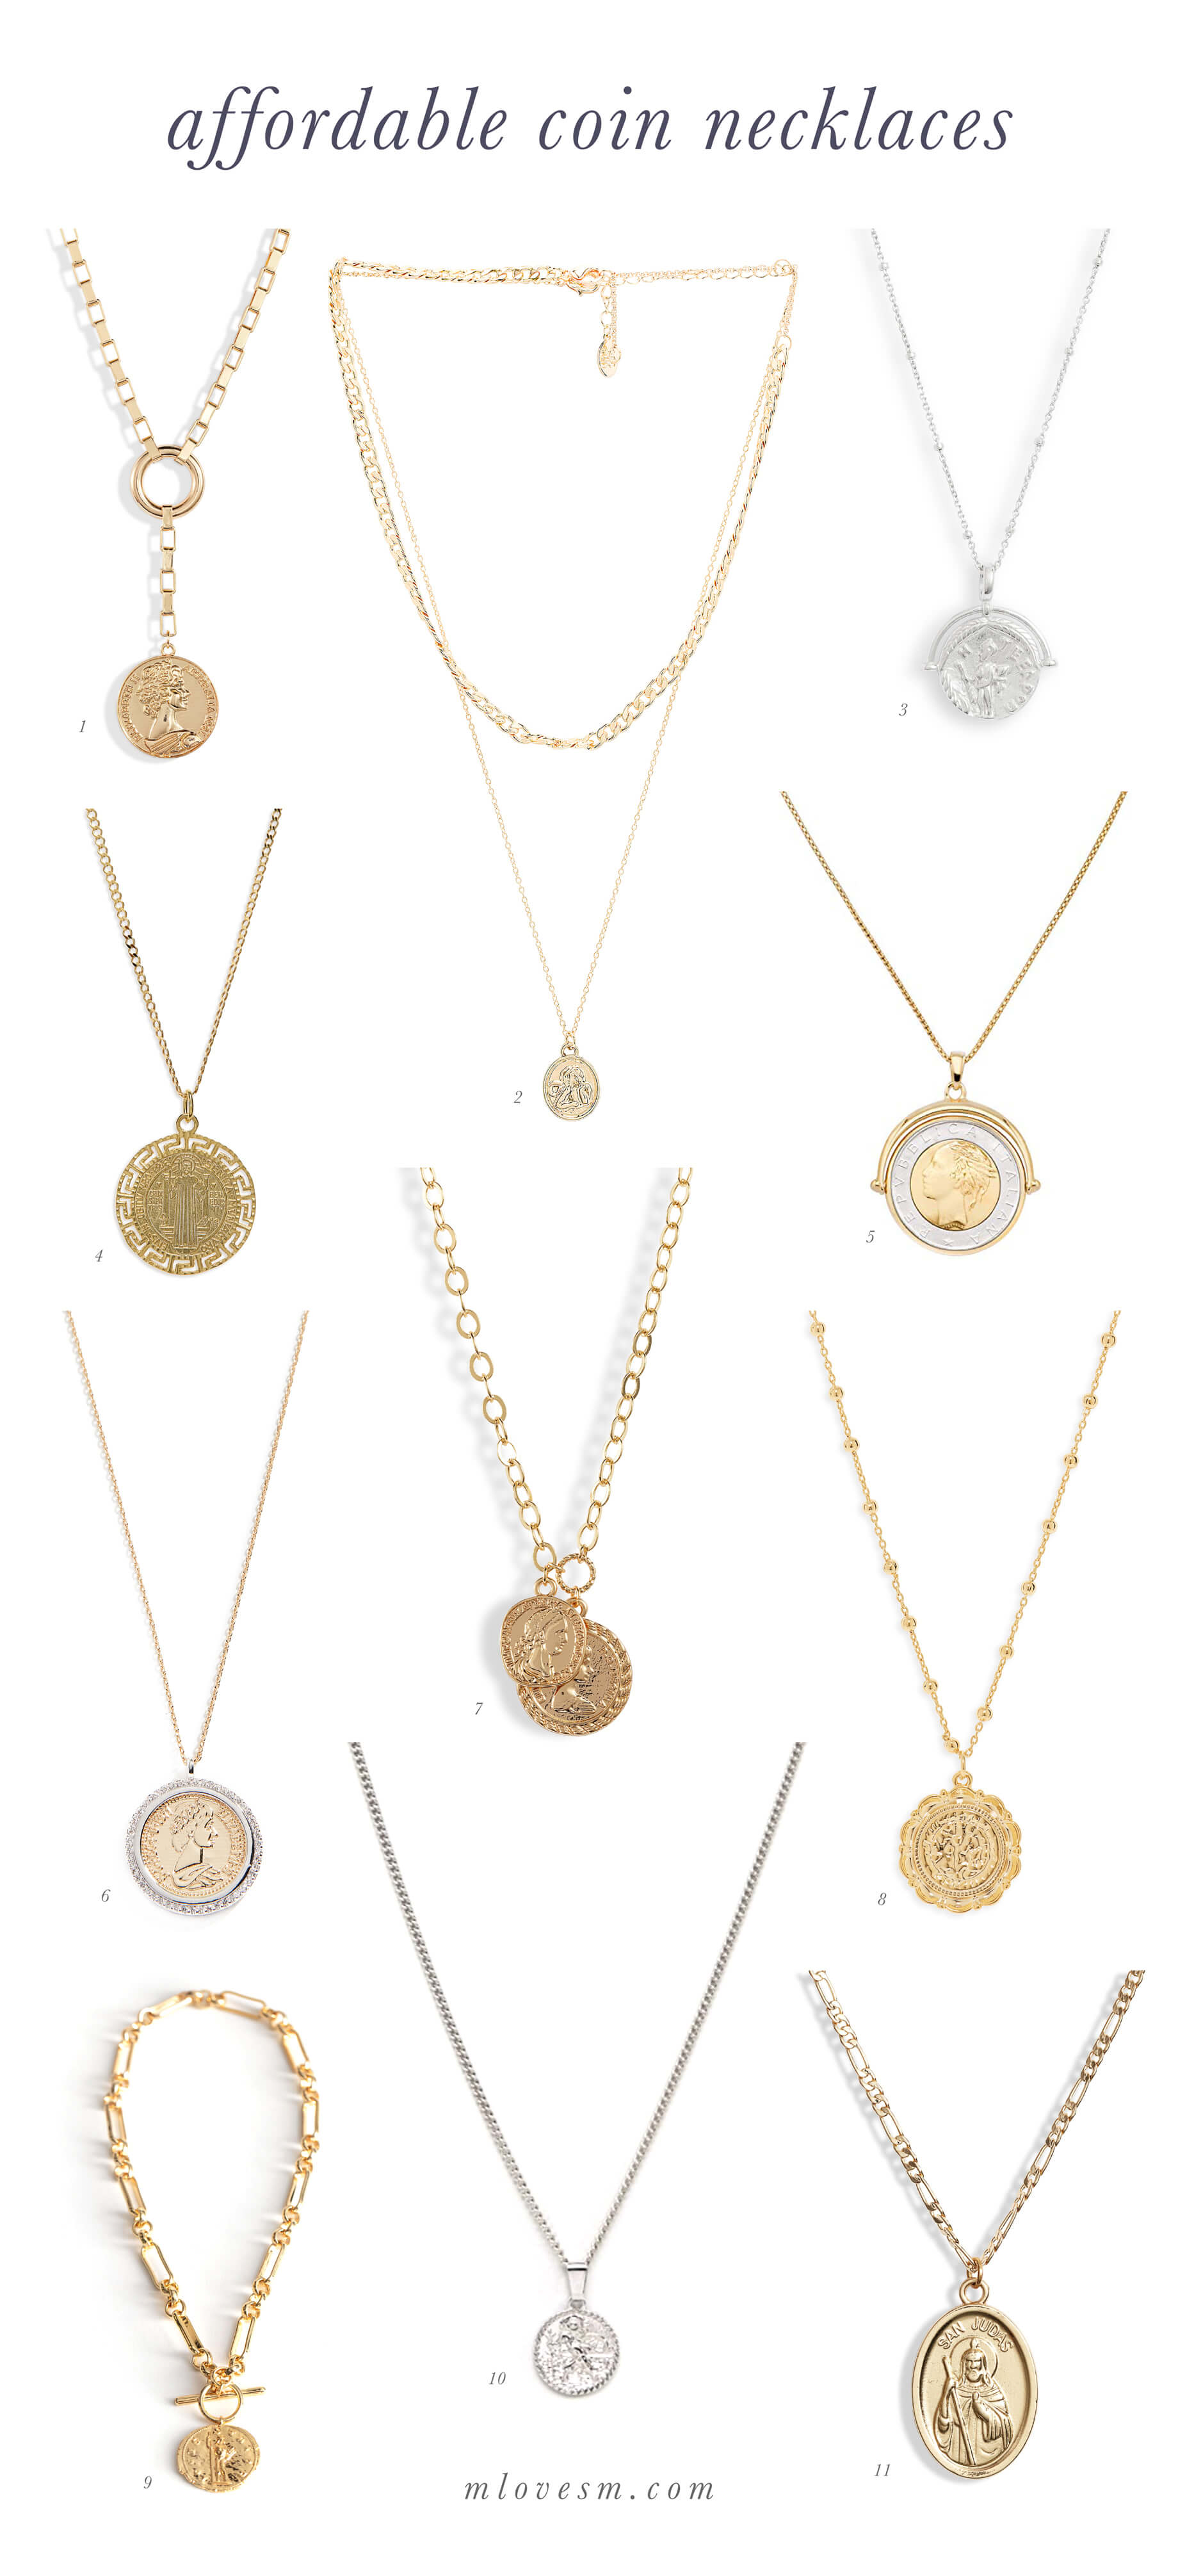 Love these affordable coin necklaces! - M Loves M @marmar